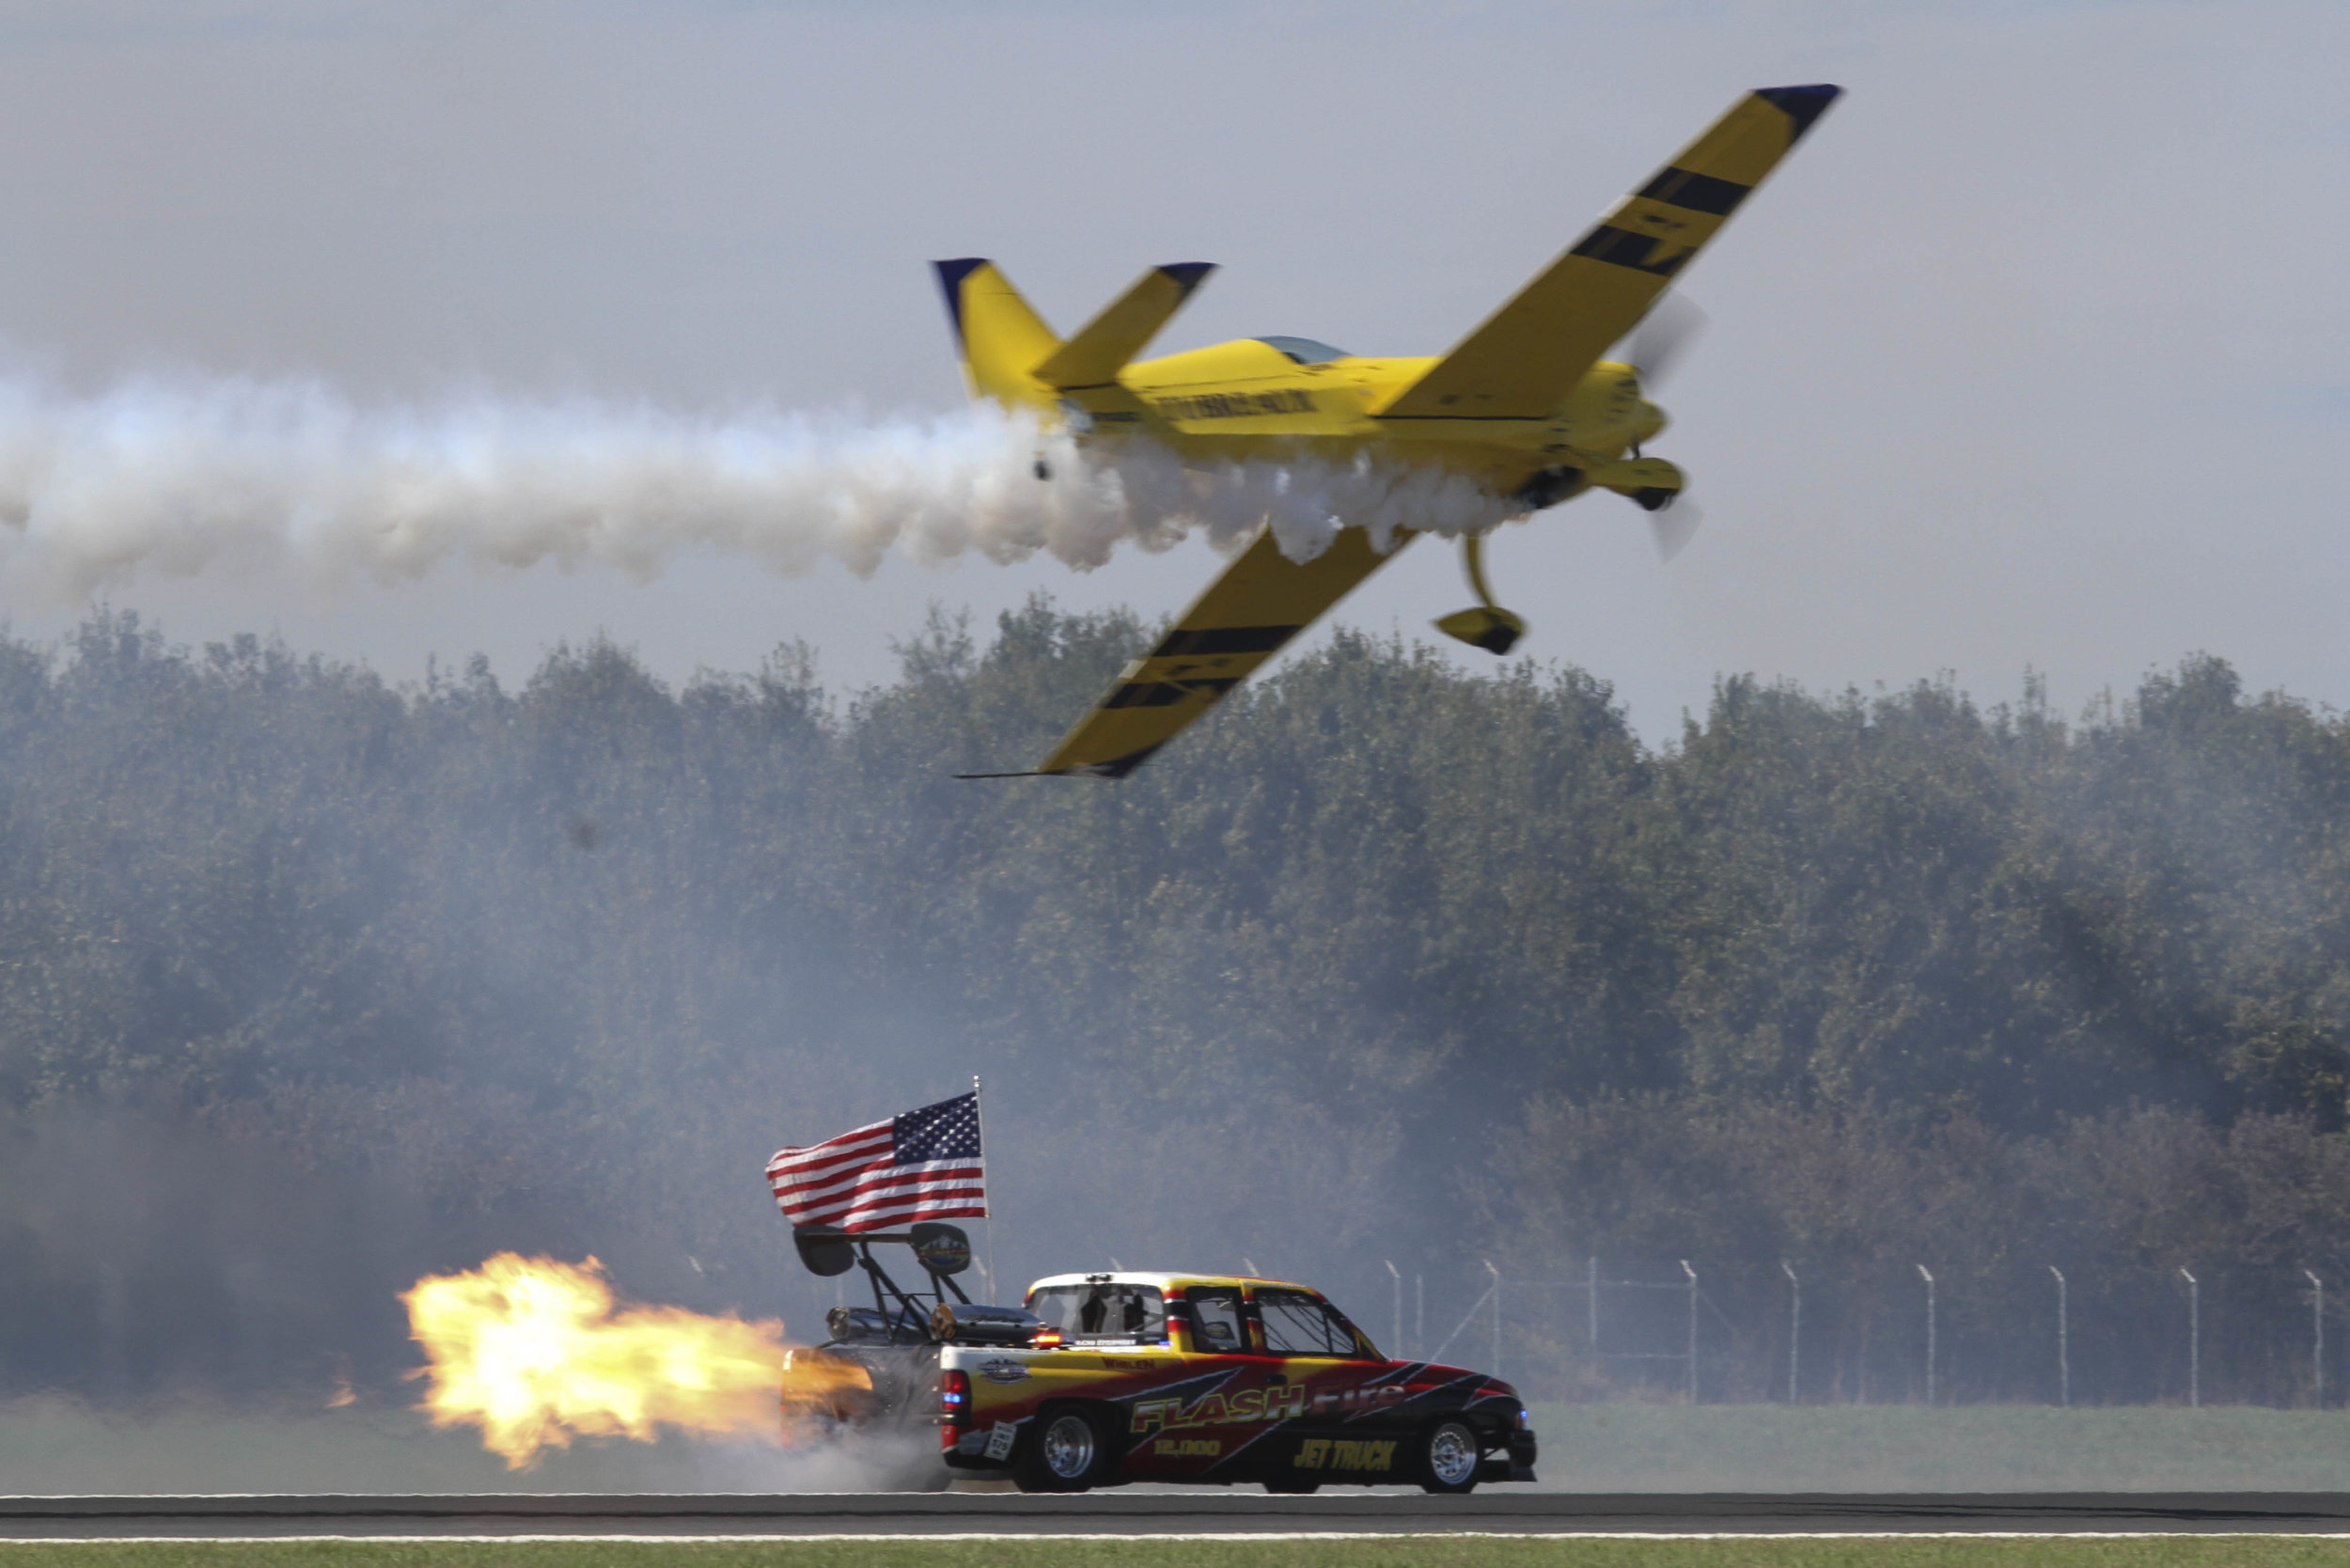 Pilot Kevin Coleman, flying the Extra 300 SHP, flies over Neal Darnell in the Flash Fire Jet Truck during the Southern Heritage Air Foundation's 2018 Best Little Airshow in the World at the Vicksburg-Tallulah Regional Airport Saturday (Courtland Wells/The Vicksburg Post)